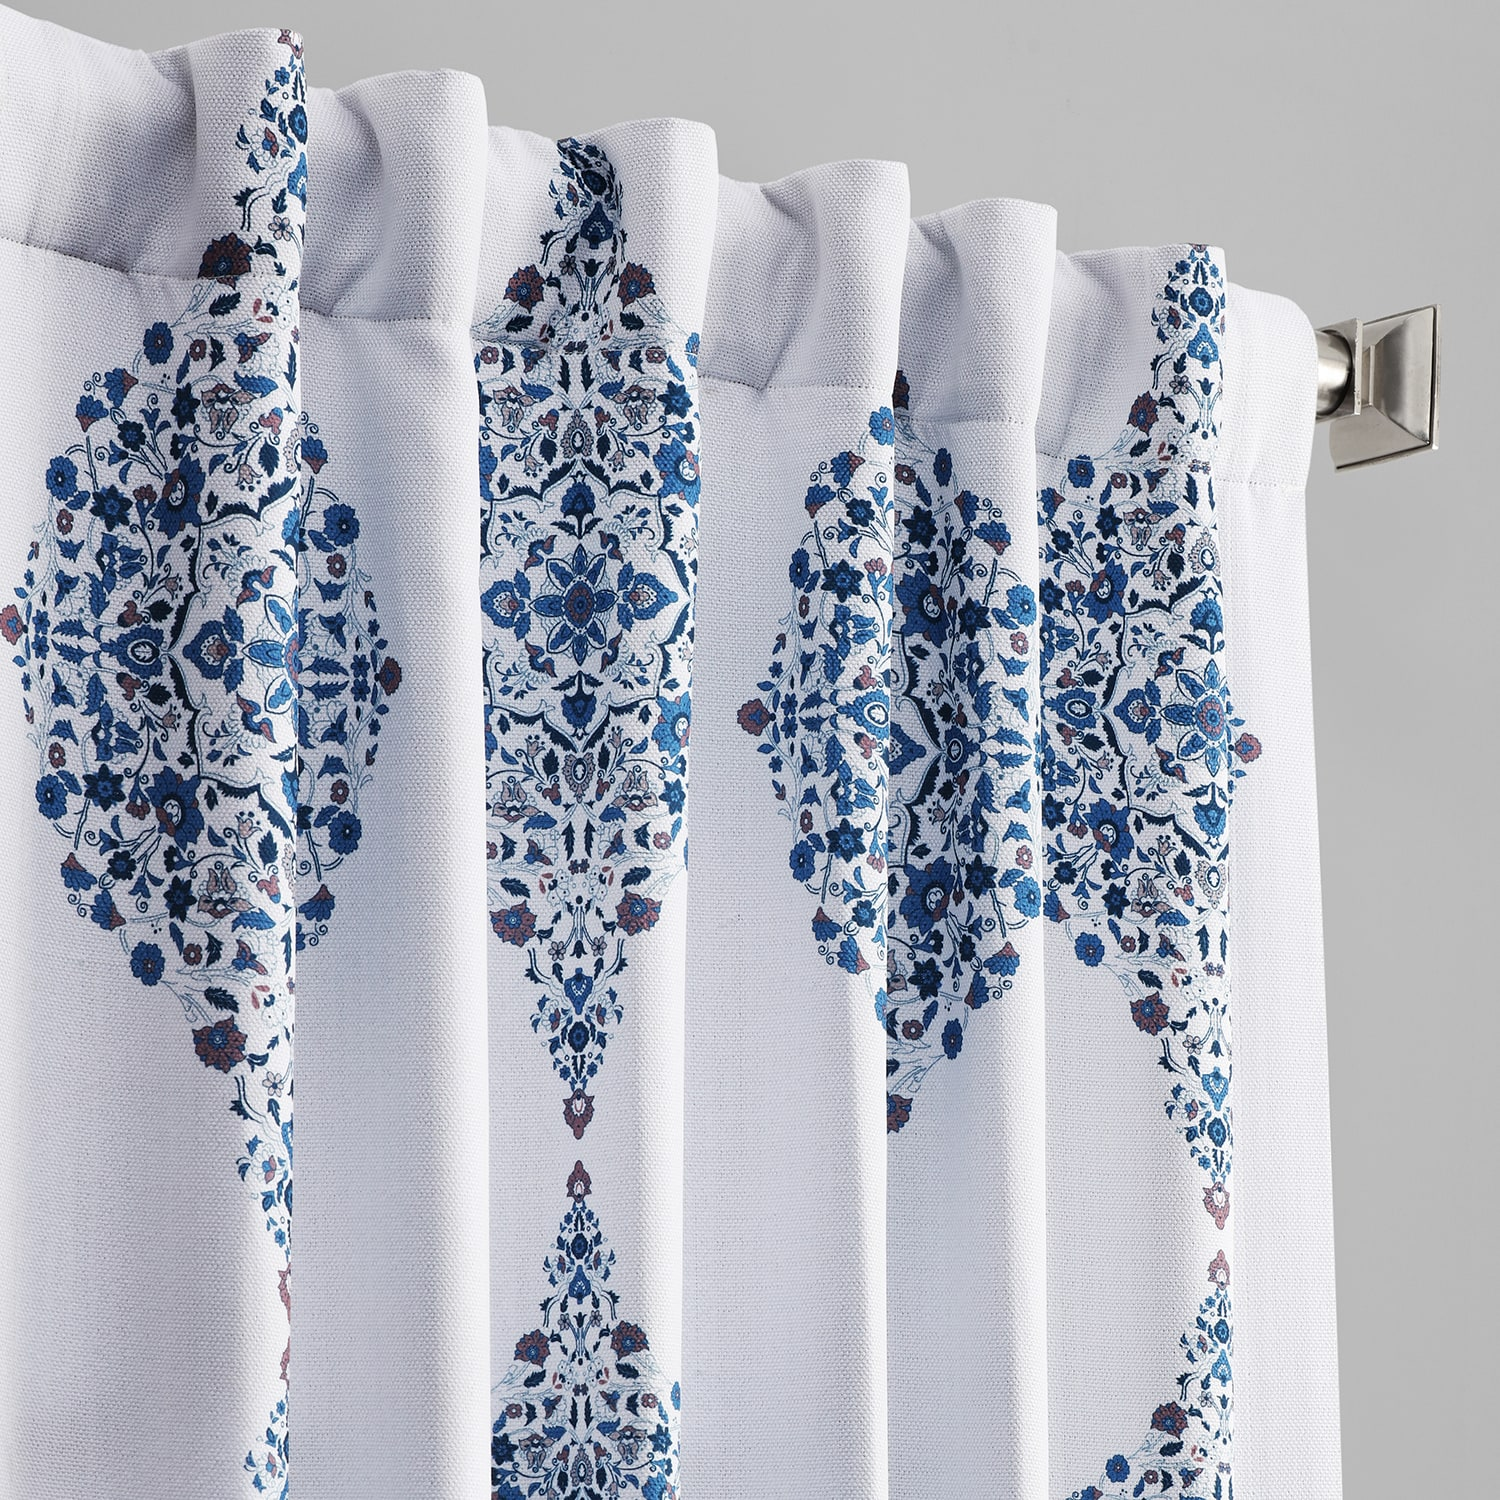 Karachi Navy Printed Linen Textured Blackout Curtain